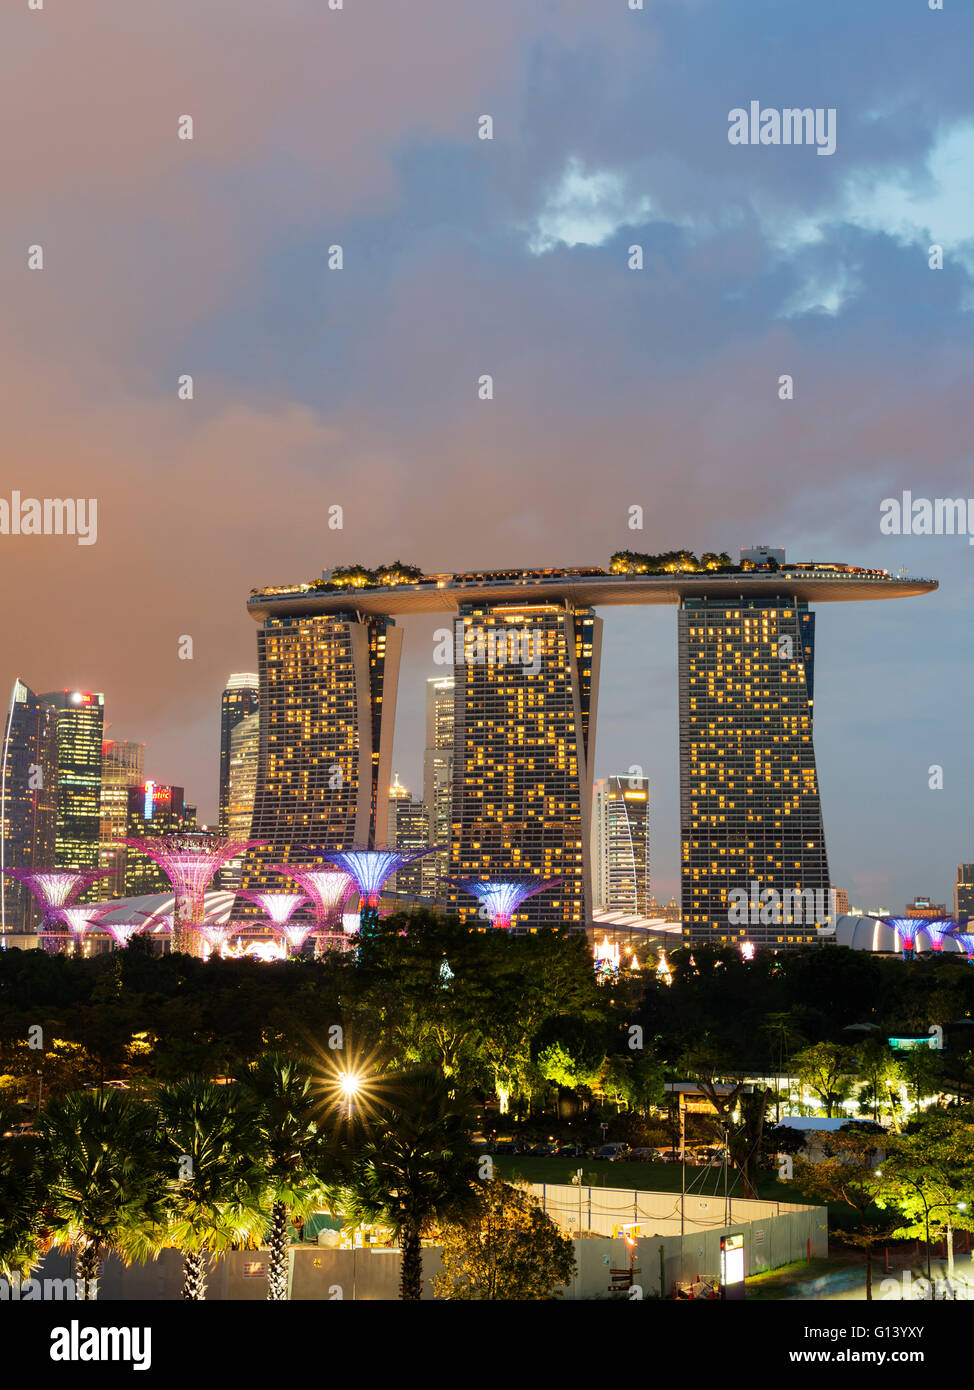 South East Asia, Singapore, Gardens by the Bay, Supertree Grove and ...